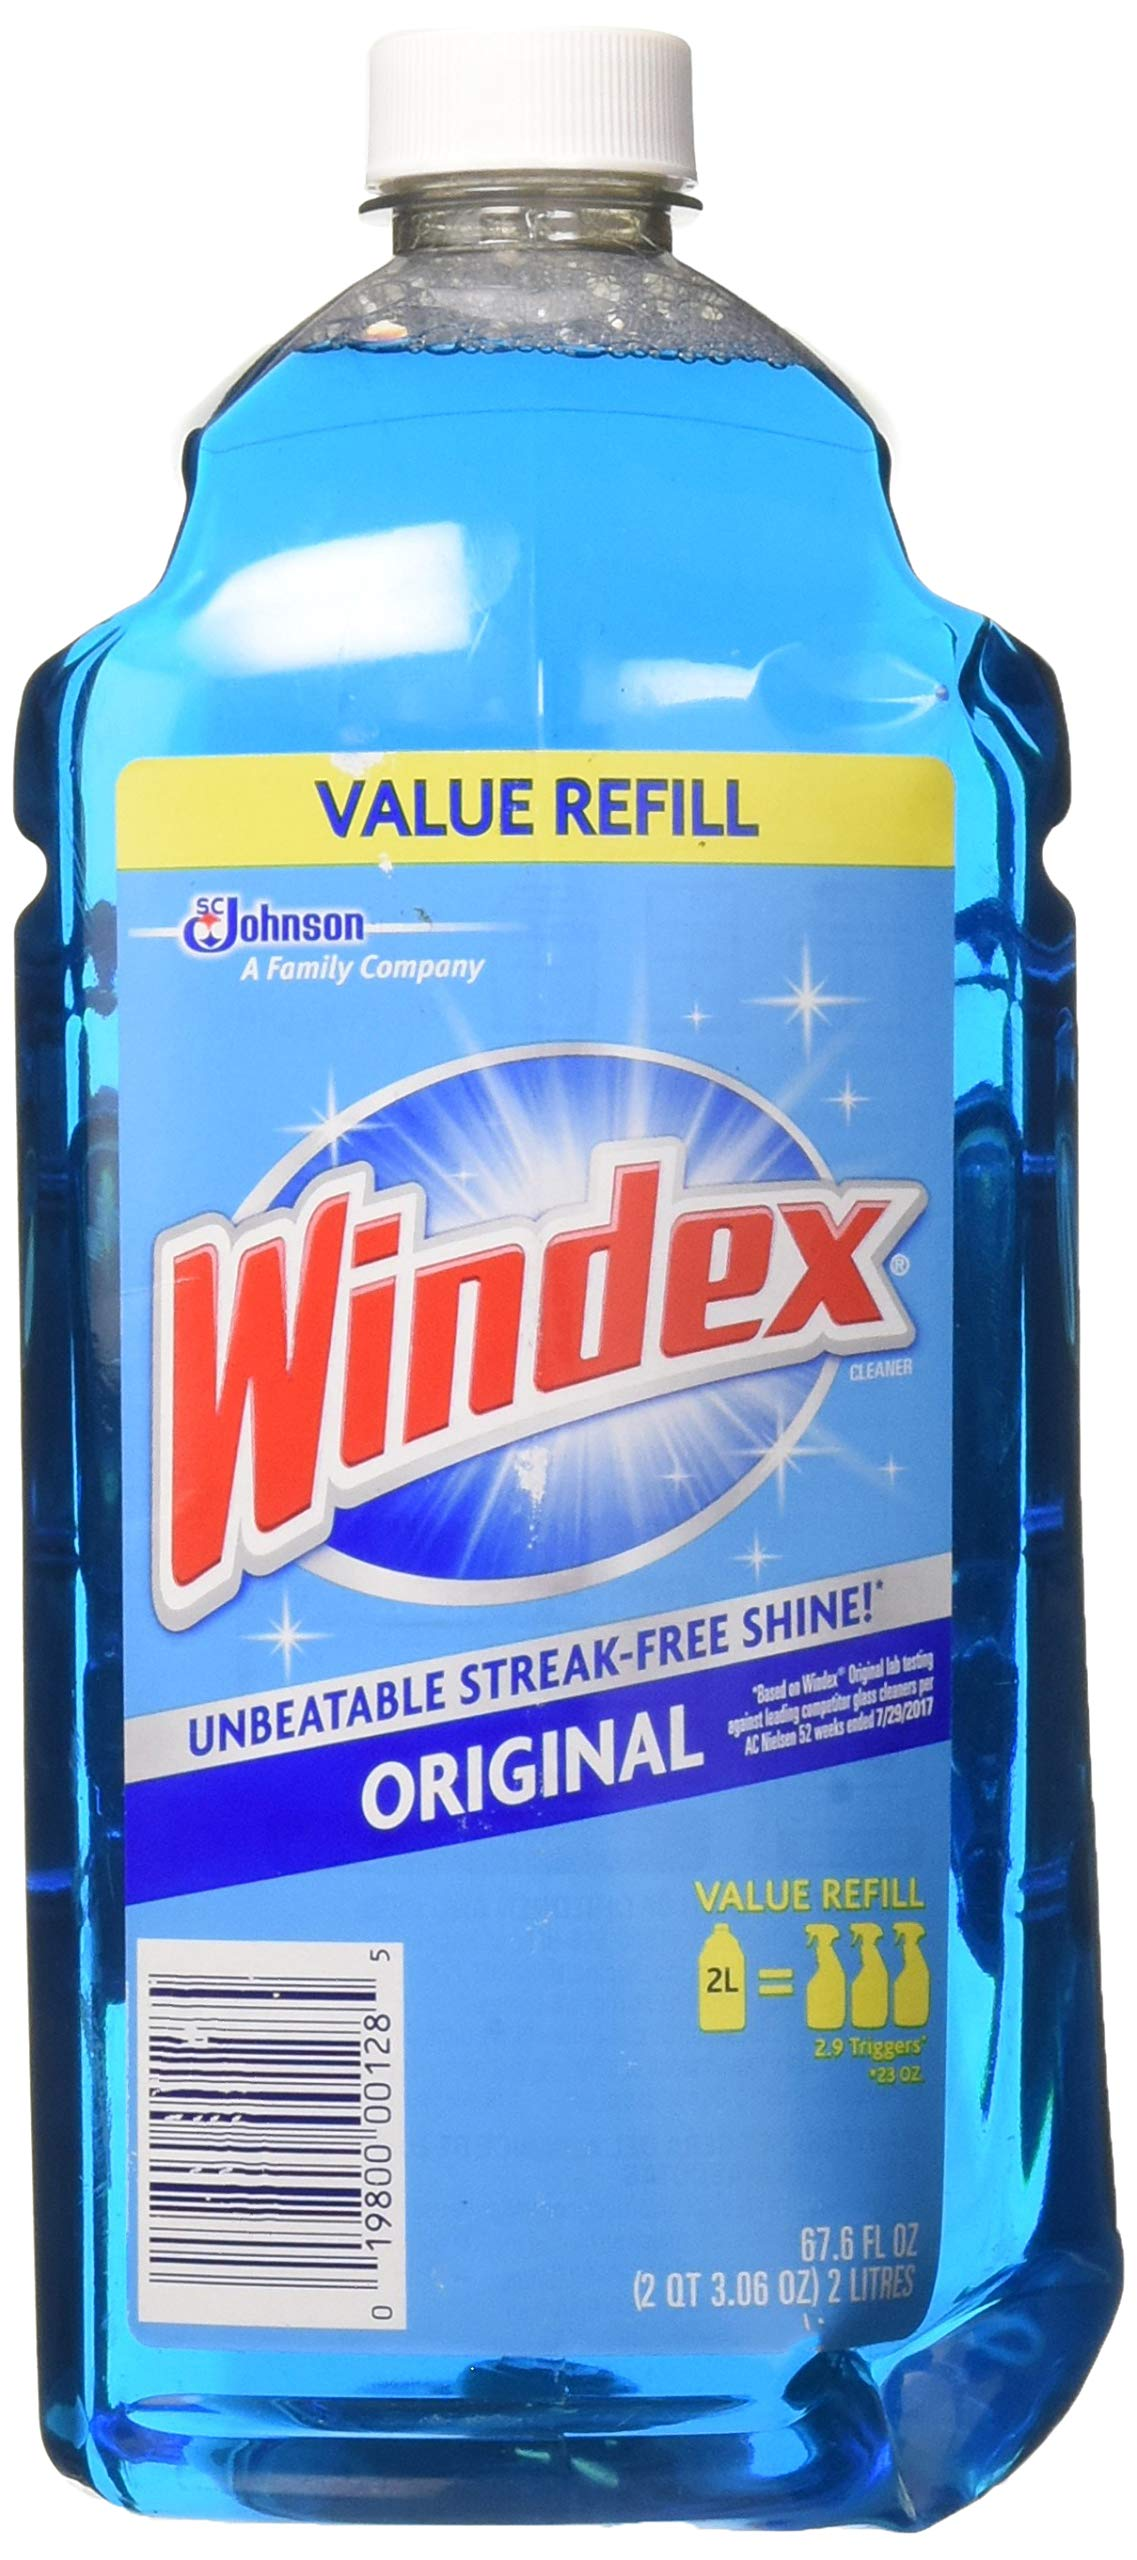 Windex Original Glass Cleaner Refill 67.6 Ounces (2 Liter) (1)